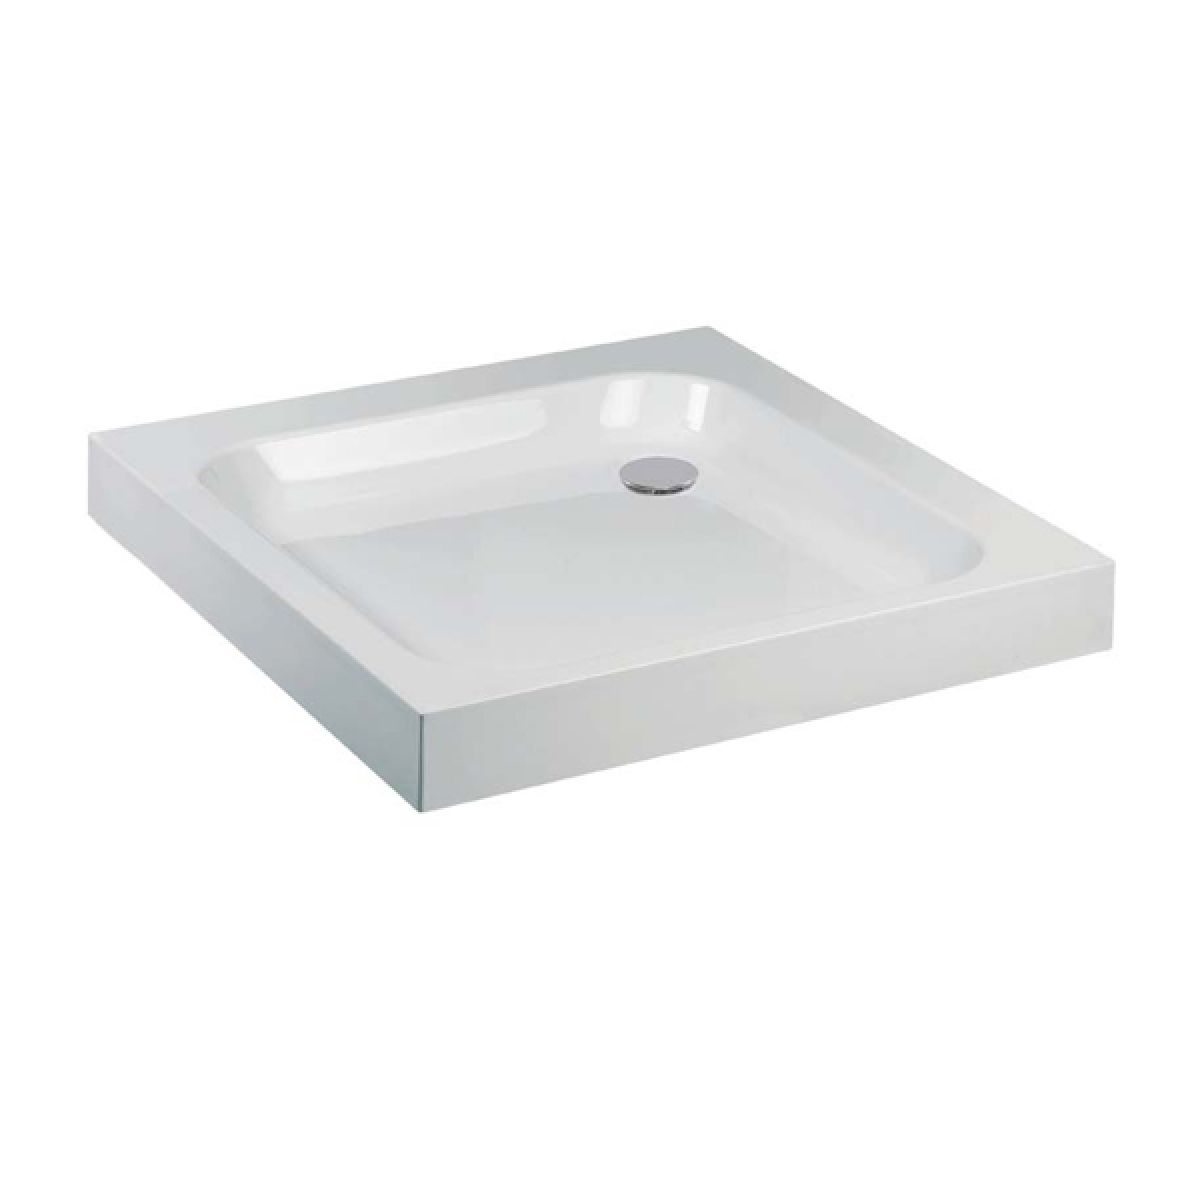 Frontline Standard Square Shower Tray 900 x 900mm